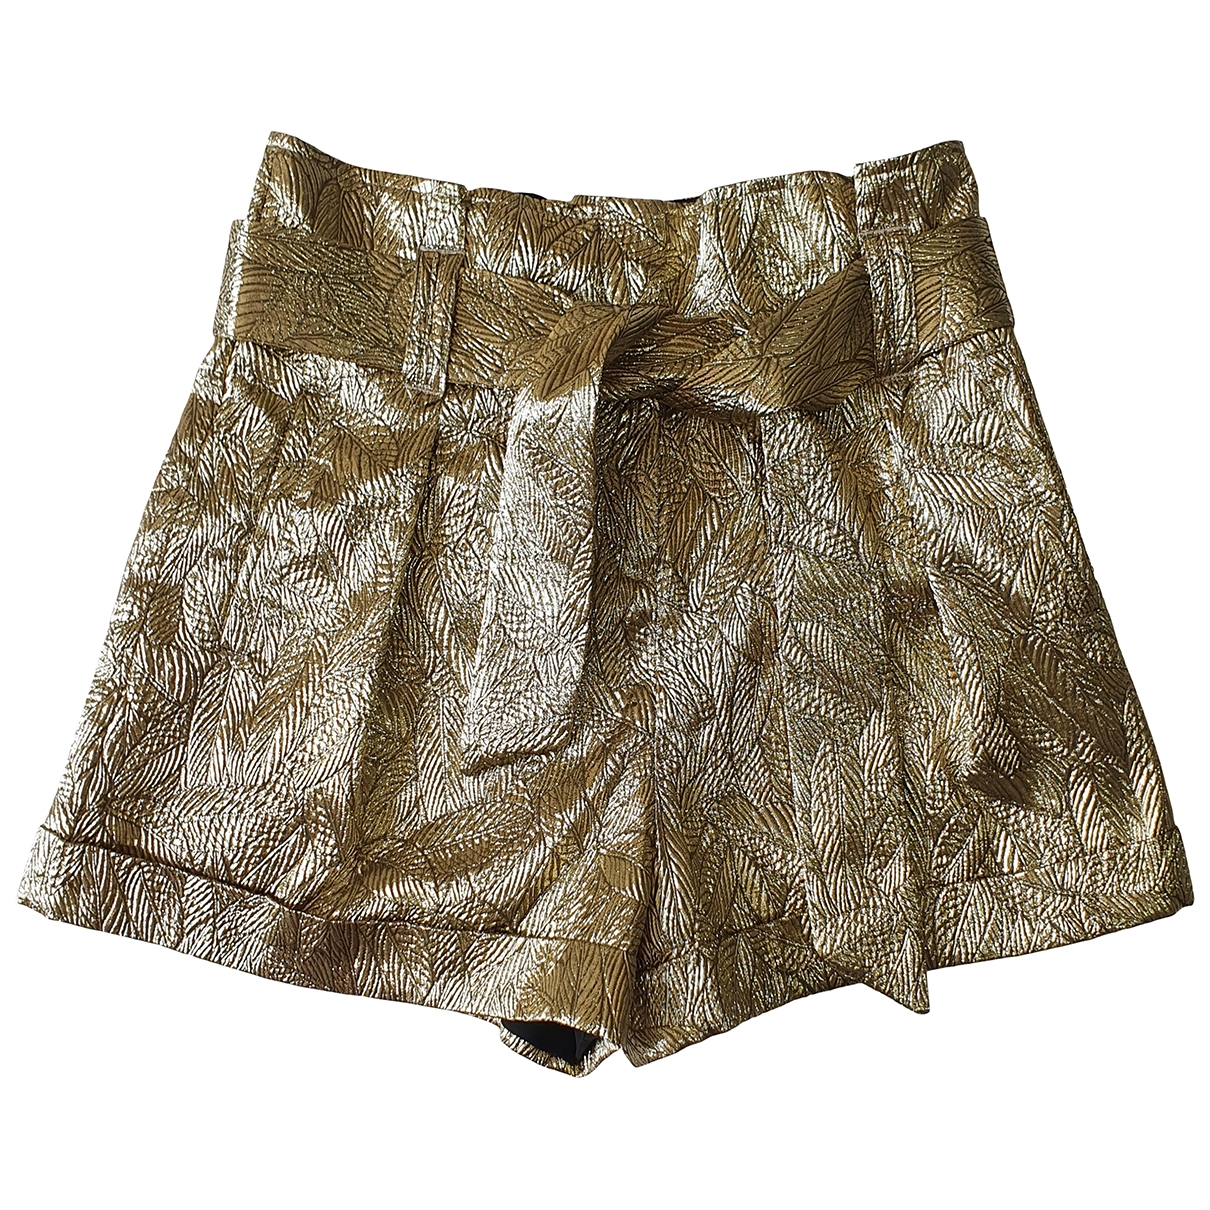 Sezane Spring Summer 2020 Shorts in  Gold Synthetik